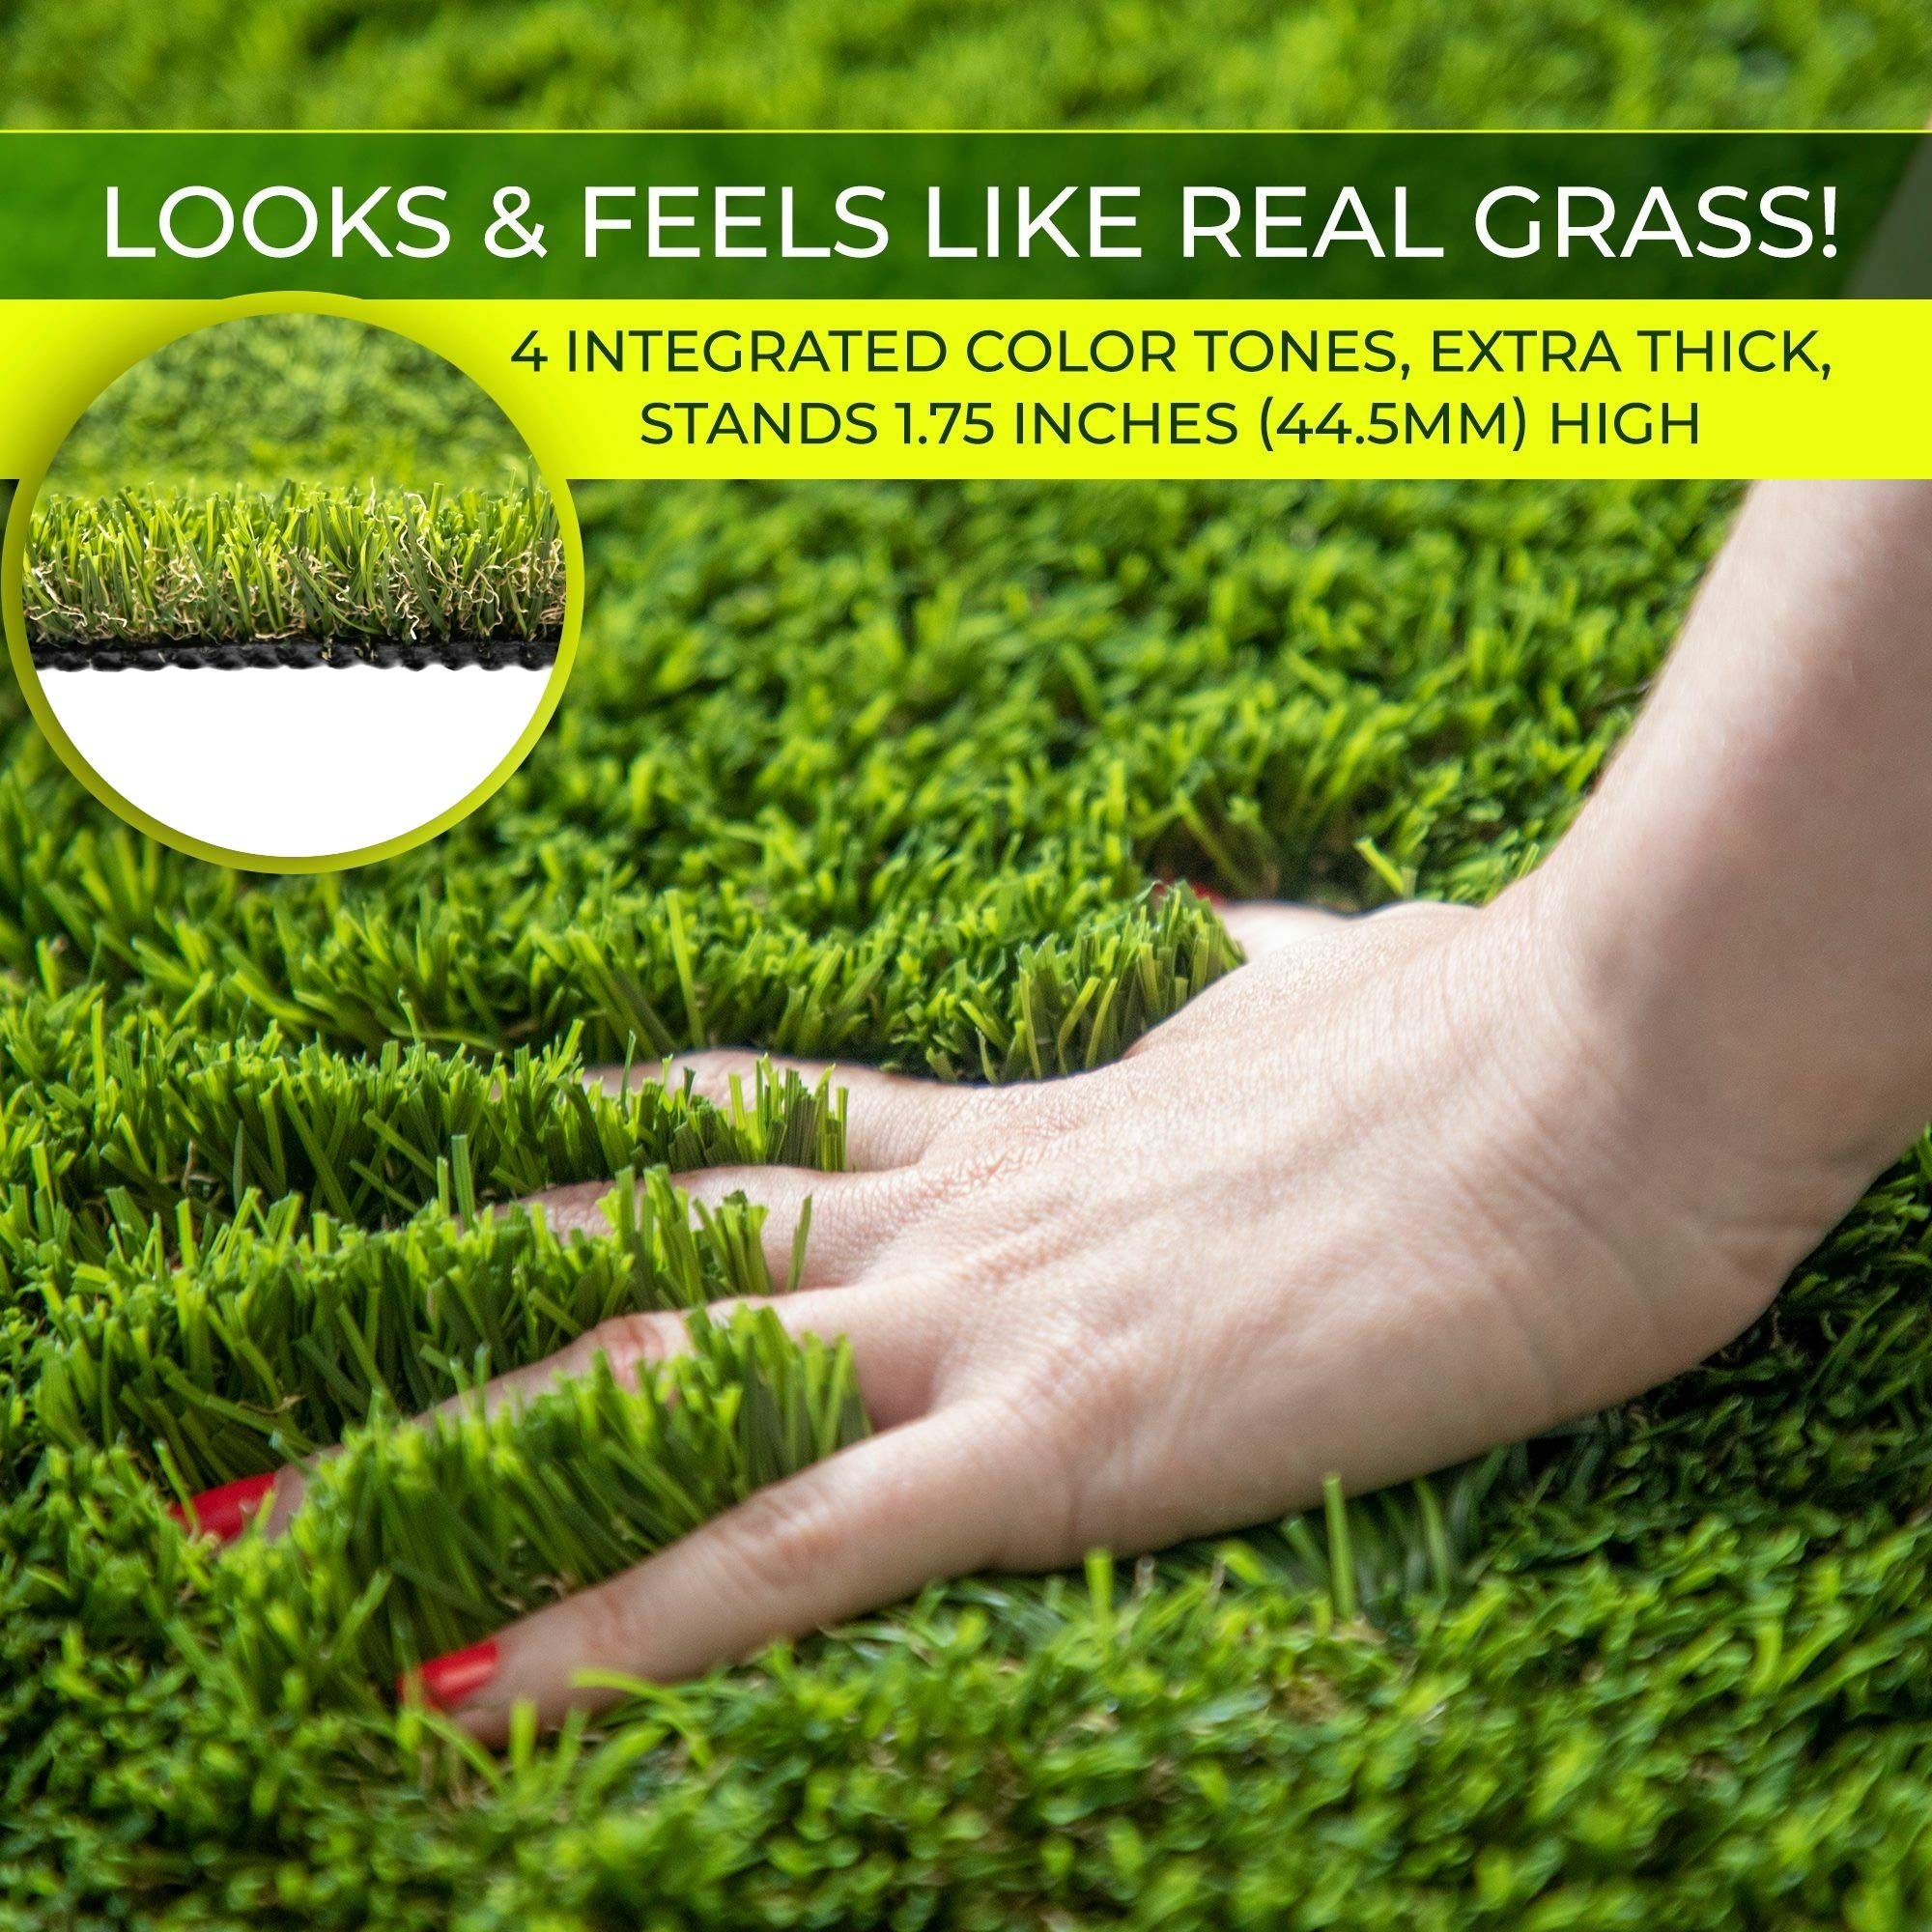 Imozel Premium Outdoor Artificial Lawn and Turf Grass 7.5'x10' - Decorative Synthetic Astroturf Grass Mats - Realistic Looking and Feeling, Weatherproof - for Landscaping, Homes, Businesses, Dogs